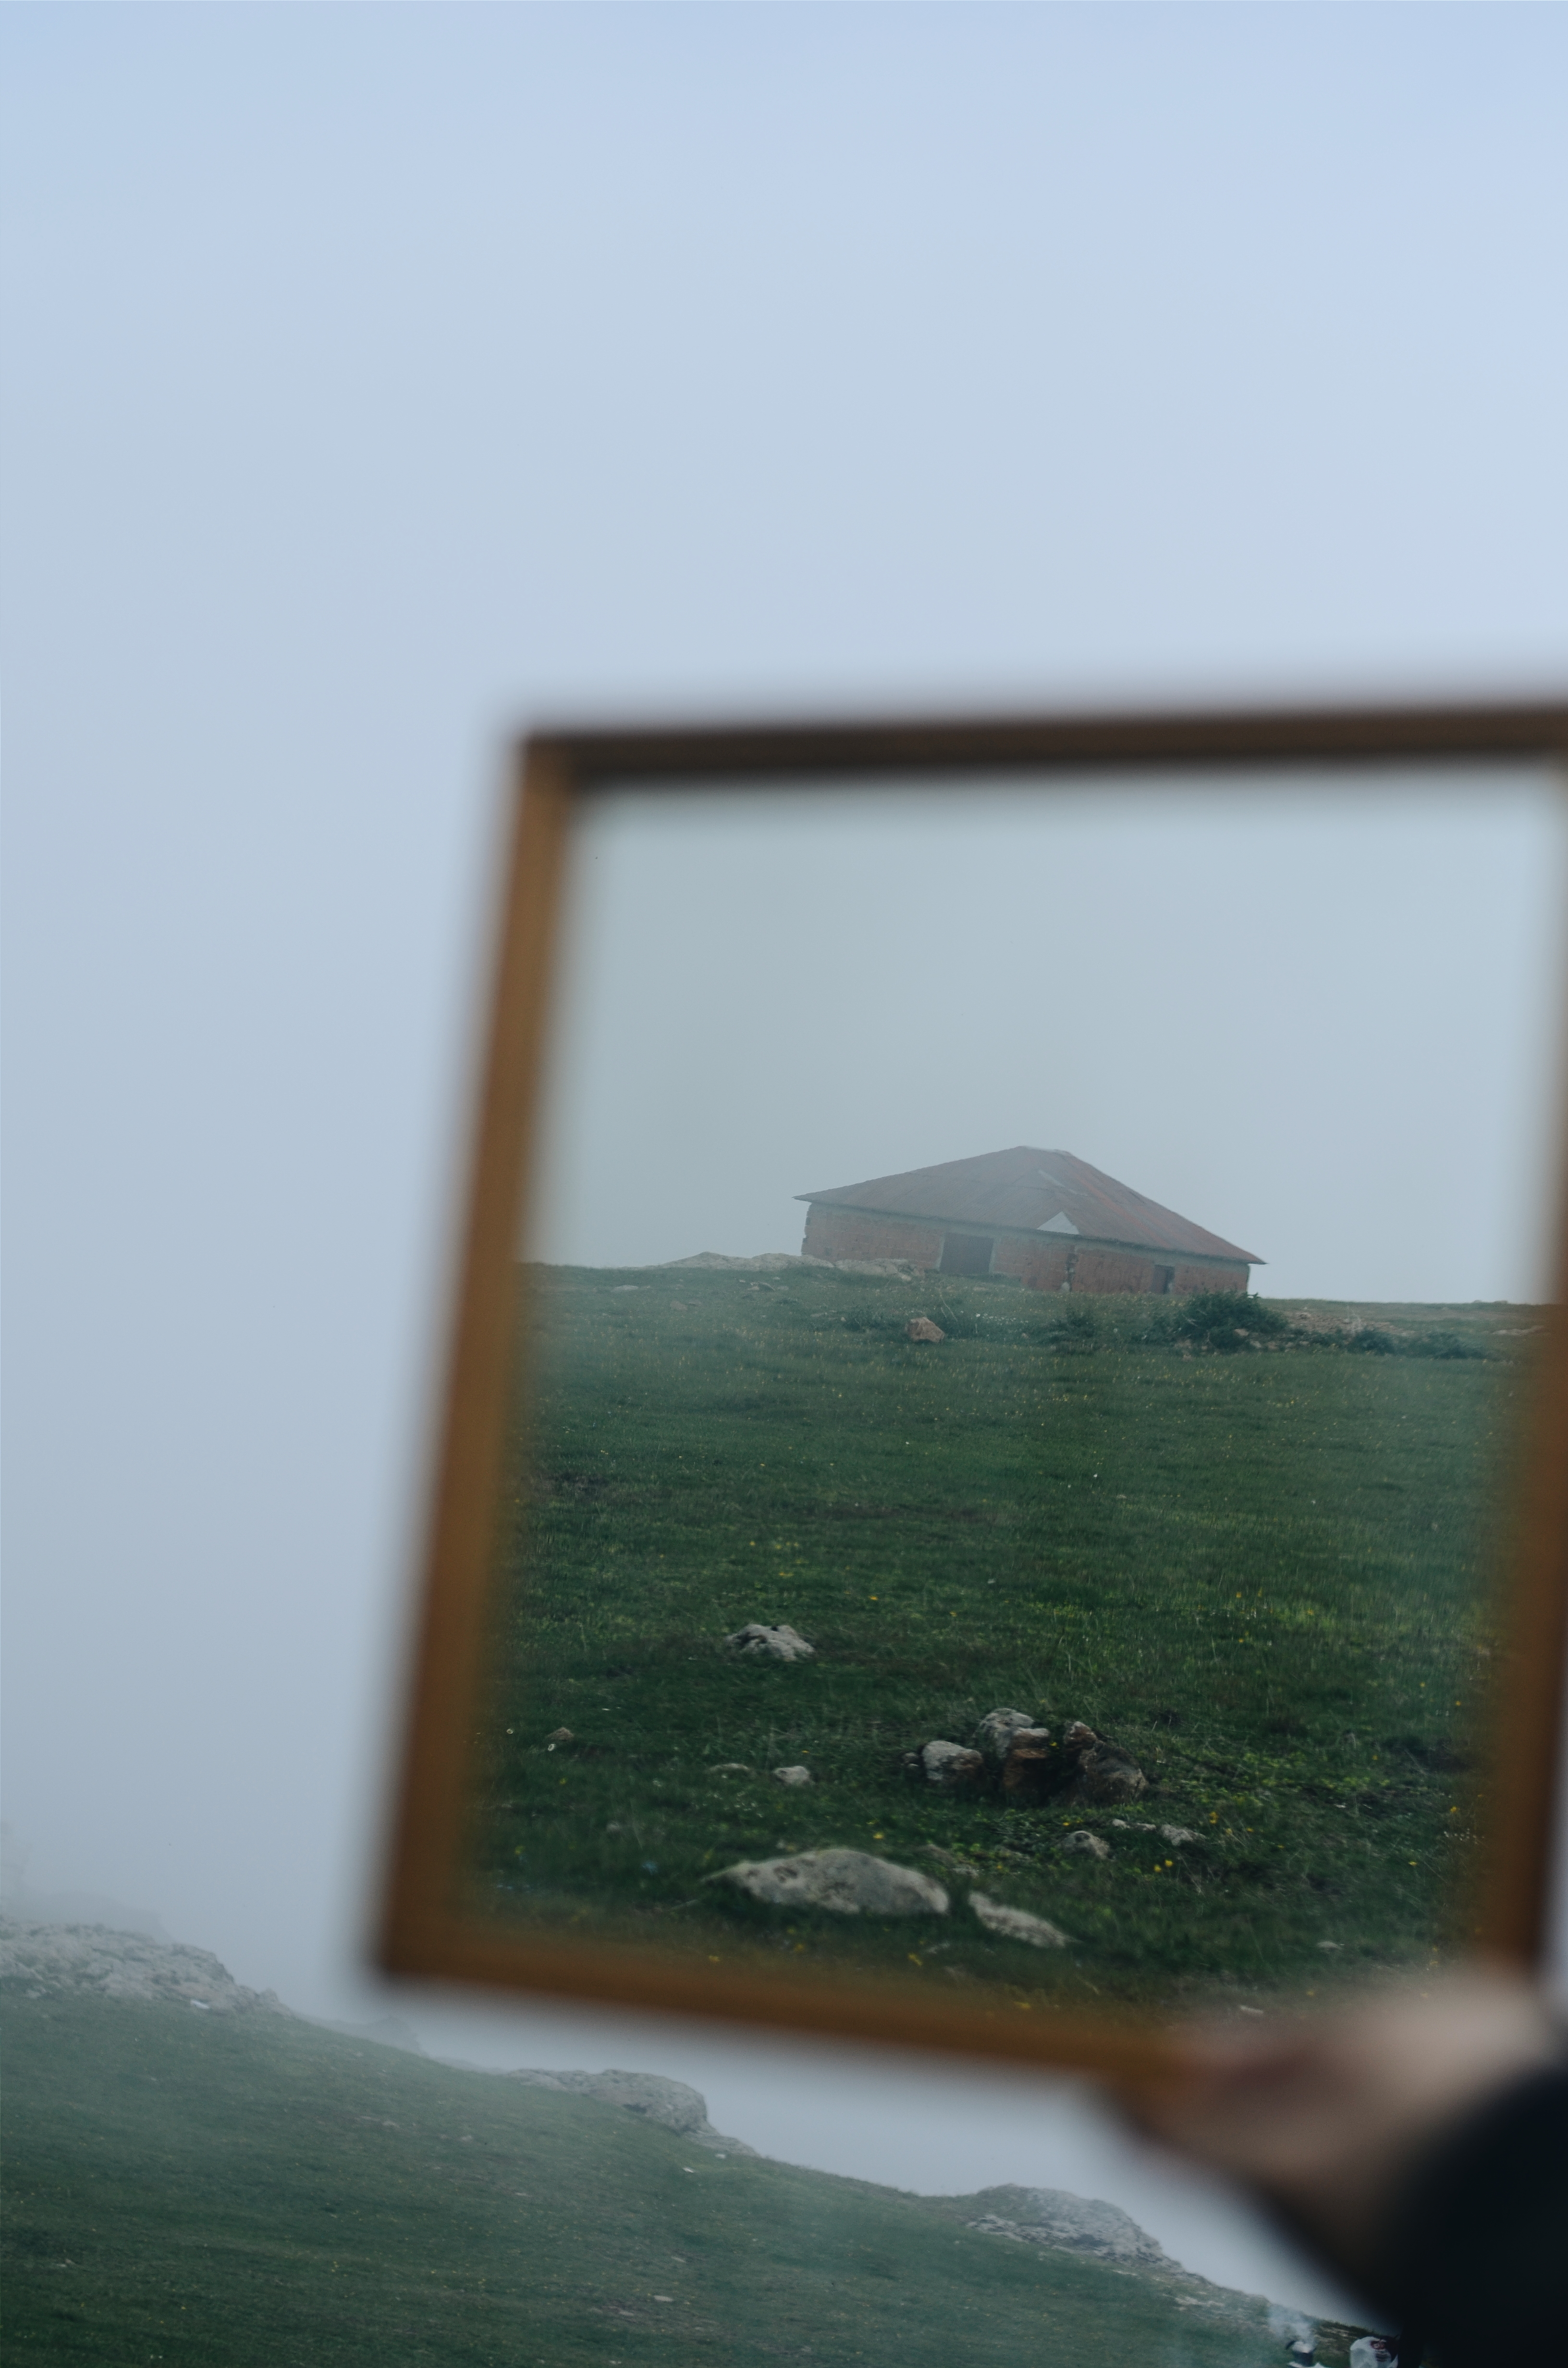 Blurred Reflection of a Brown House on a Framed Mirror